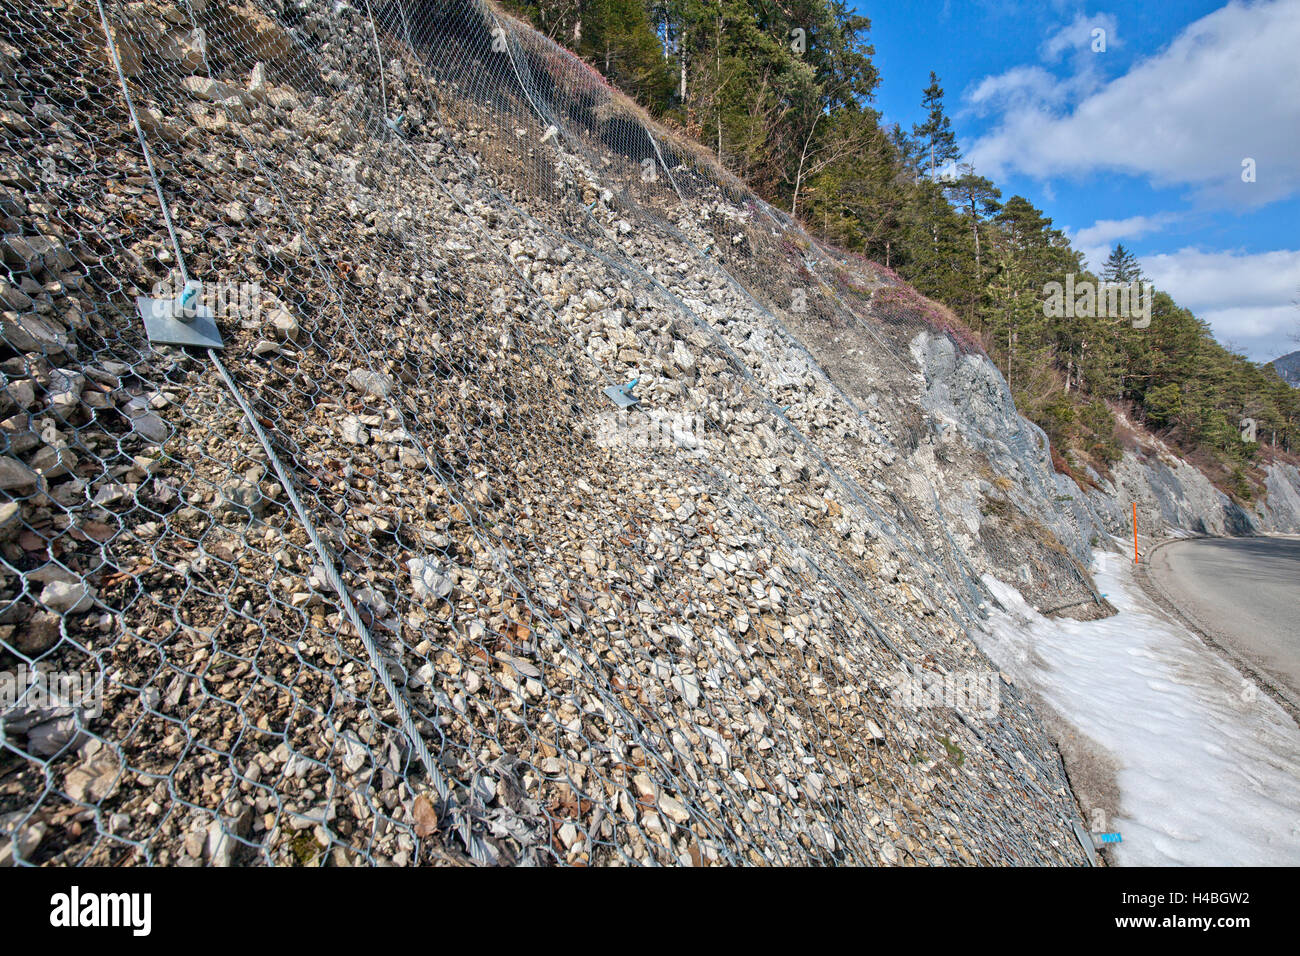 Rockfall protection on mountain road - Stock Image